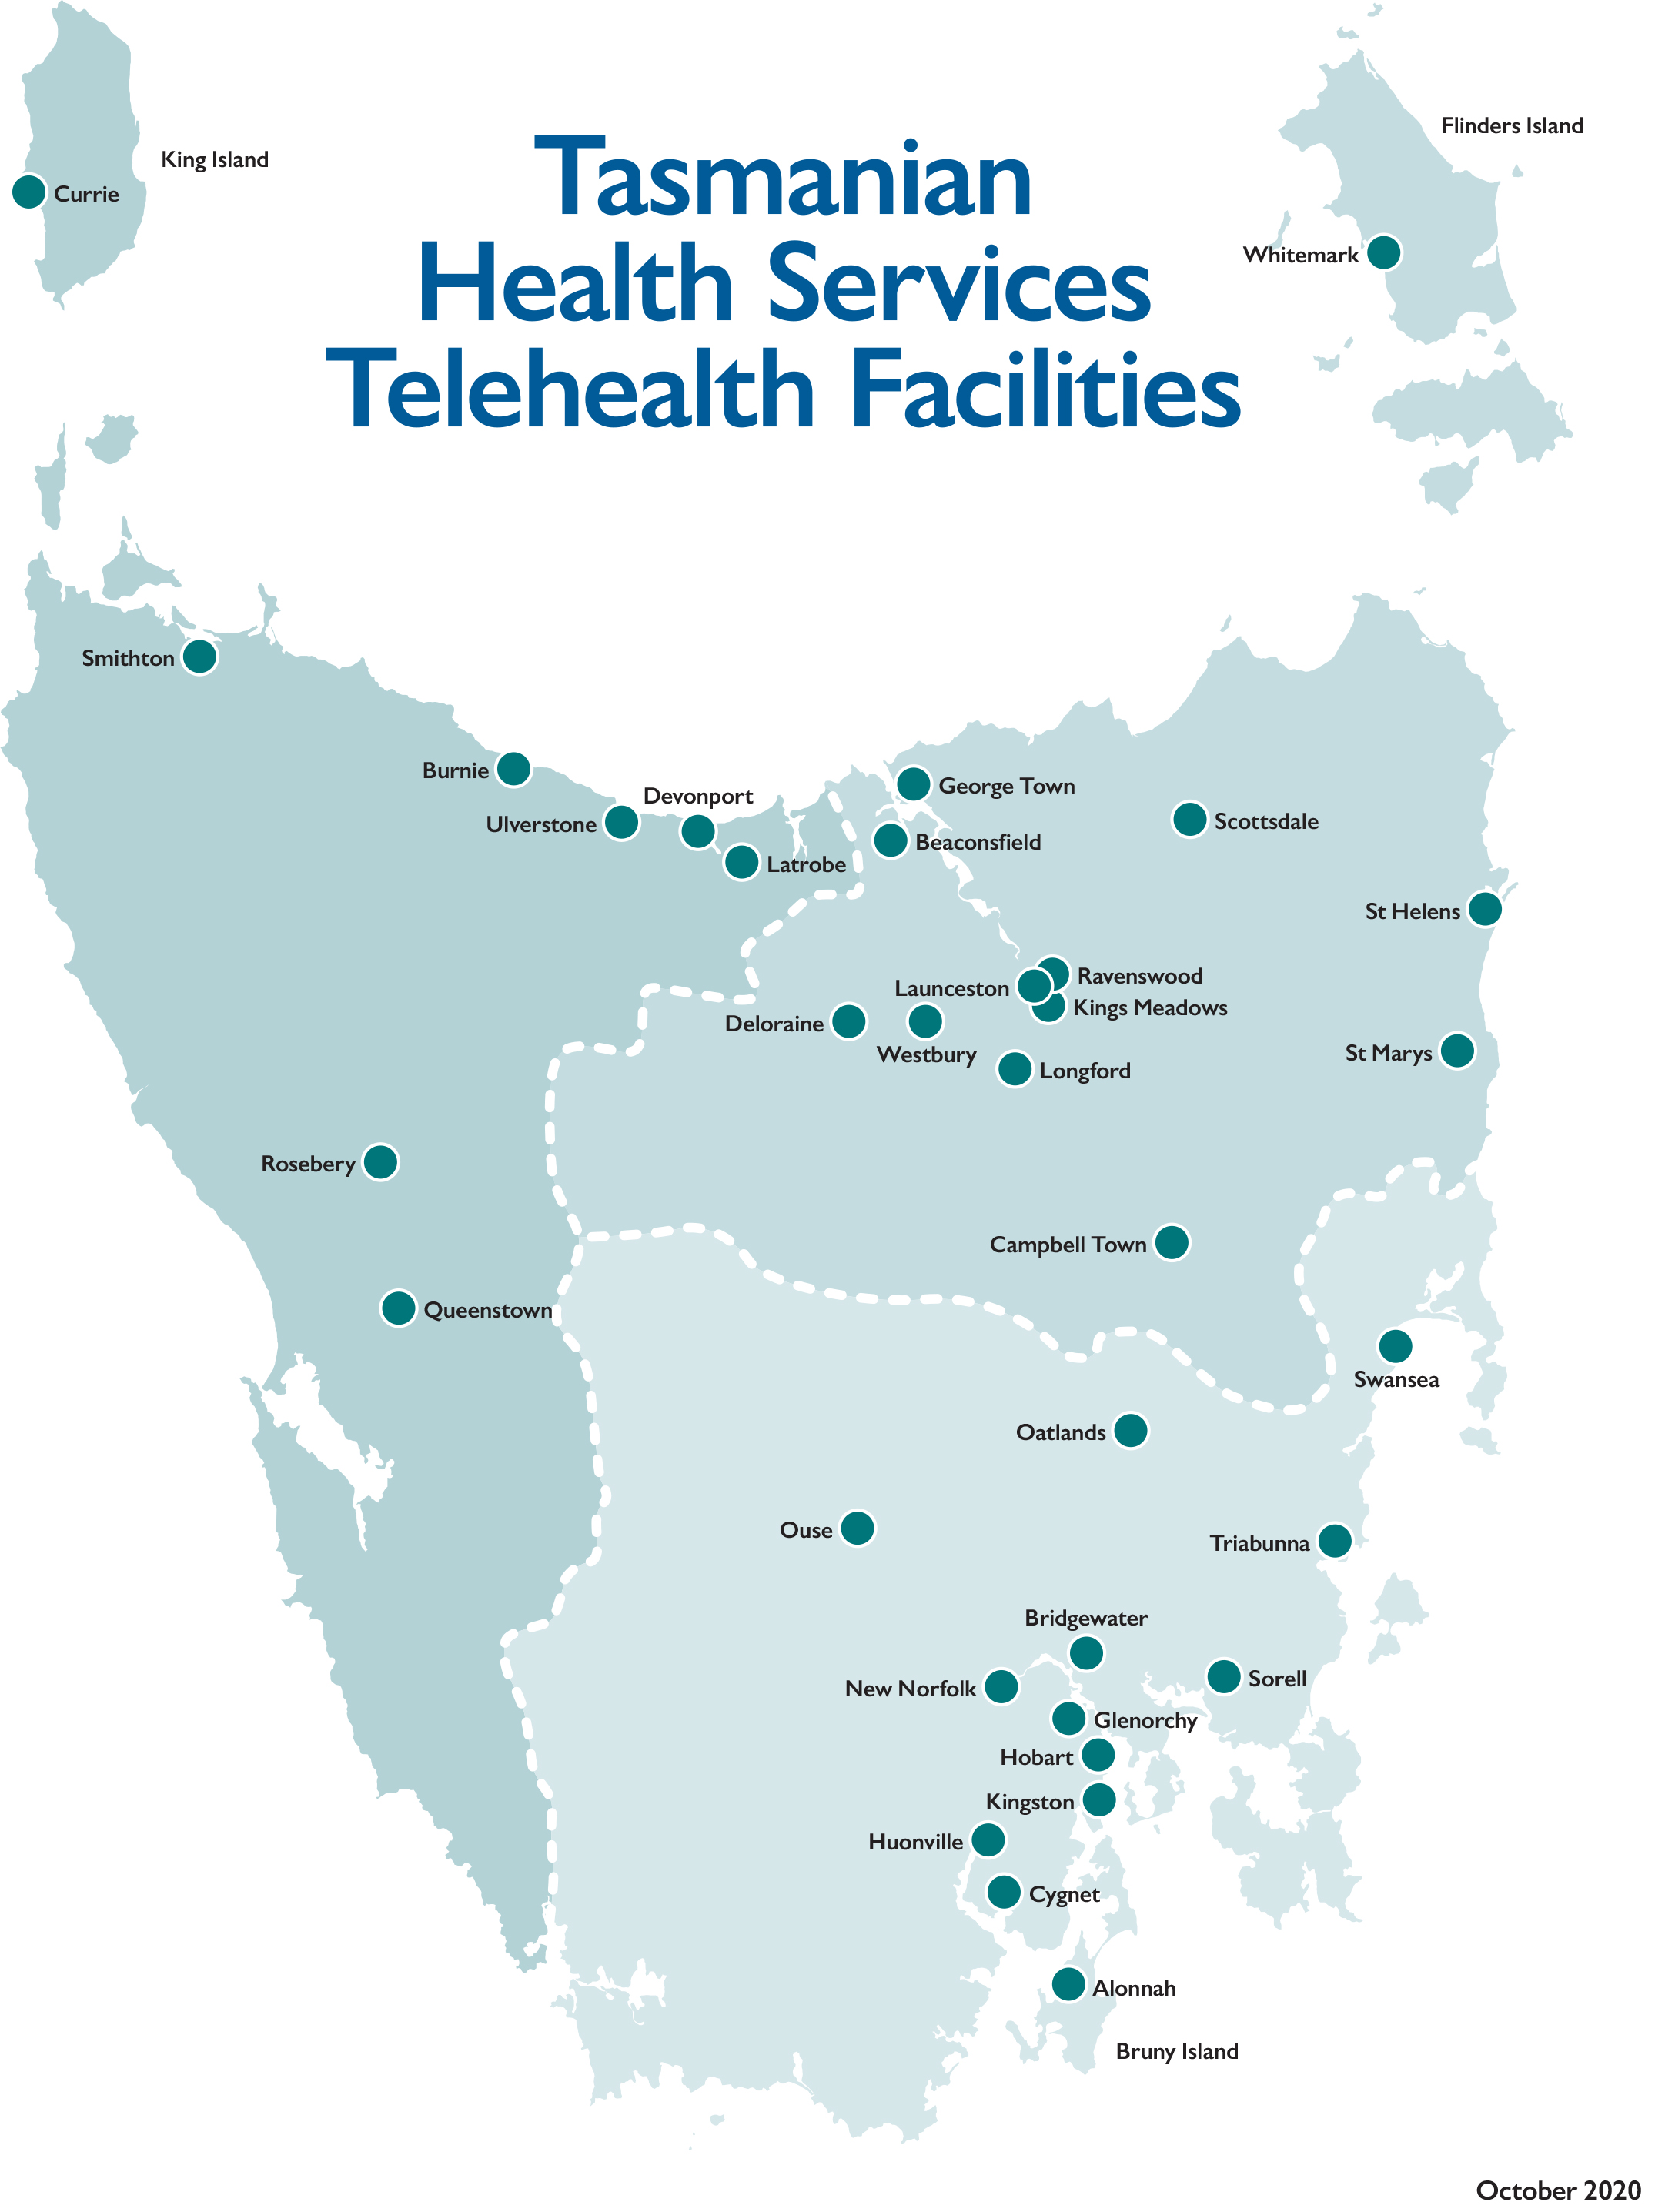 THS Telehealth Facilities